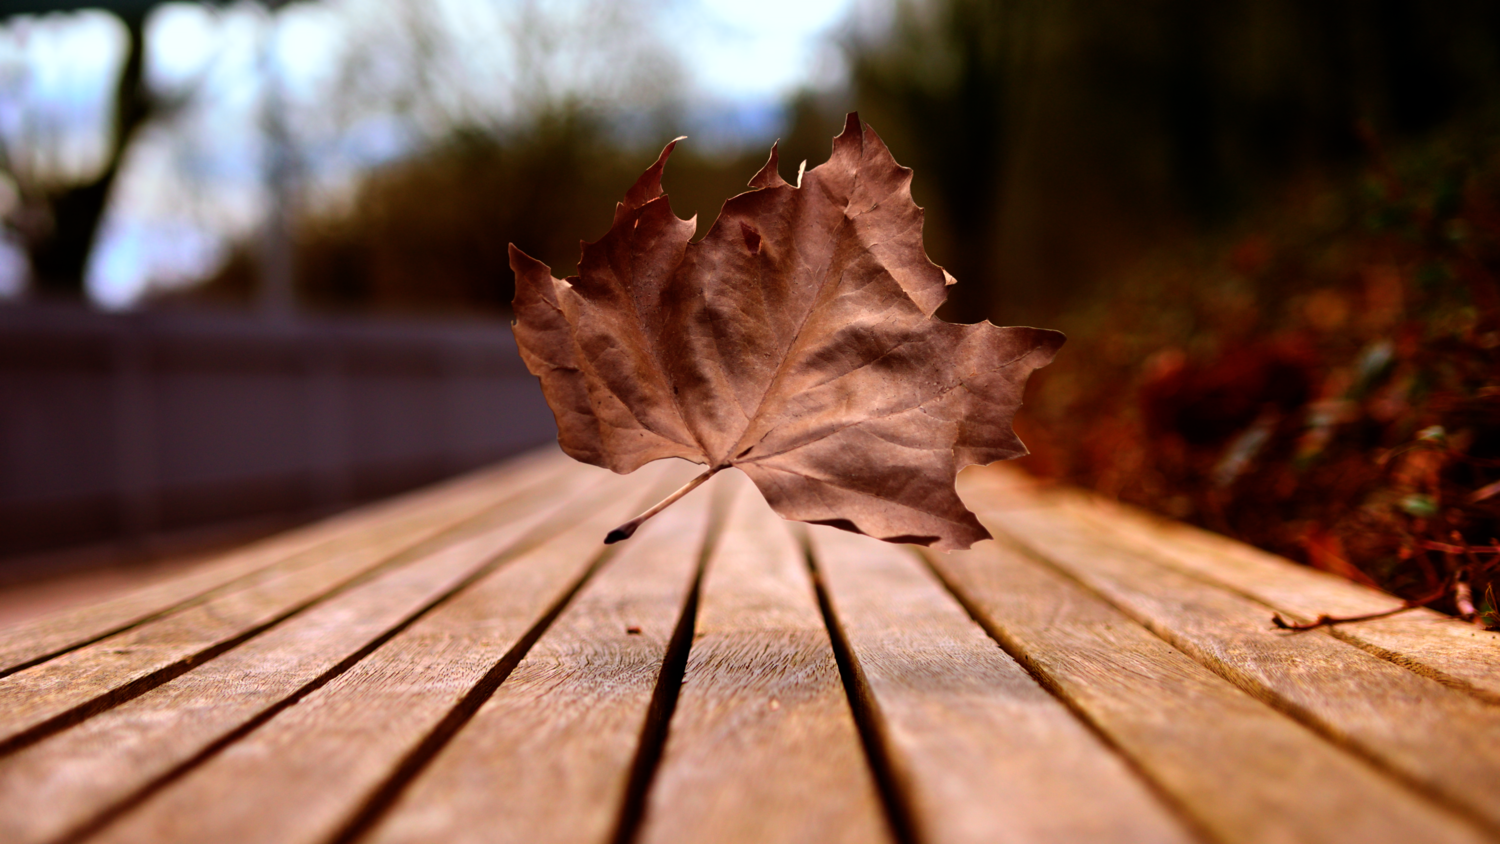 Leading to Leaves by Timothy McGlinchey